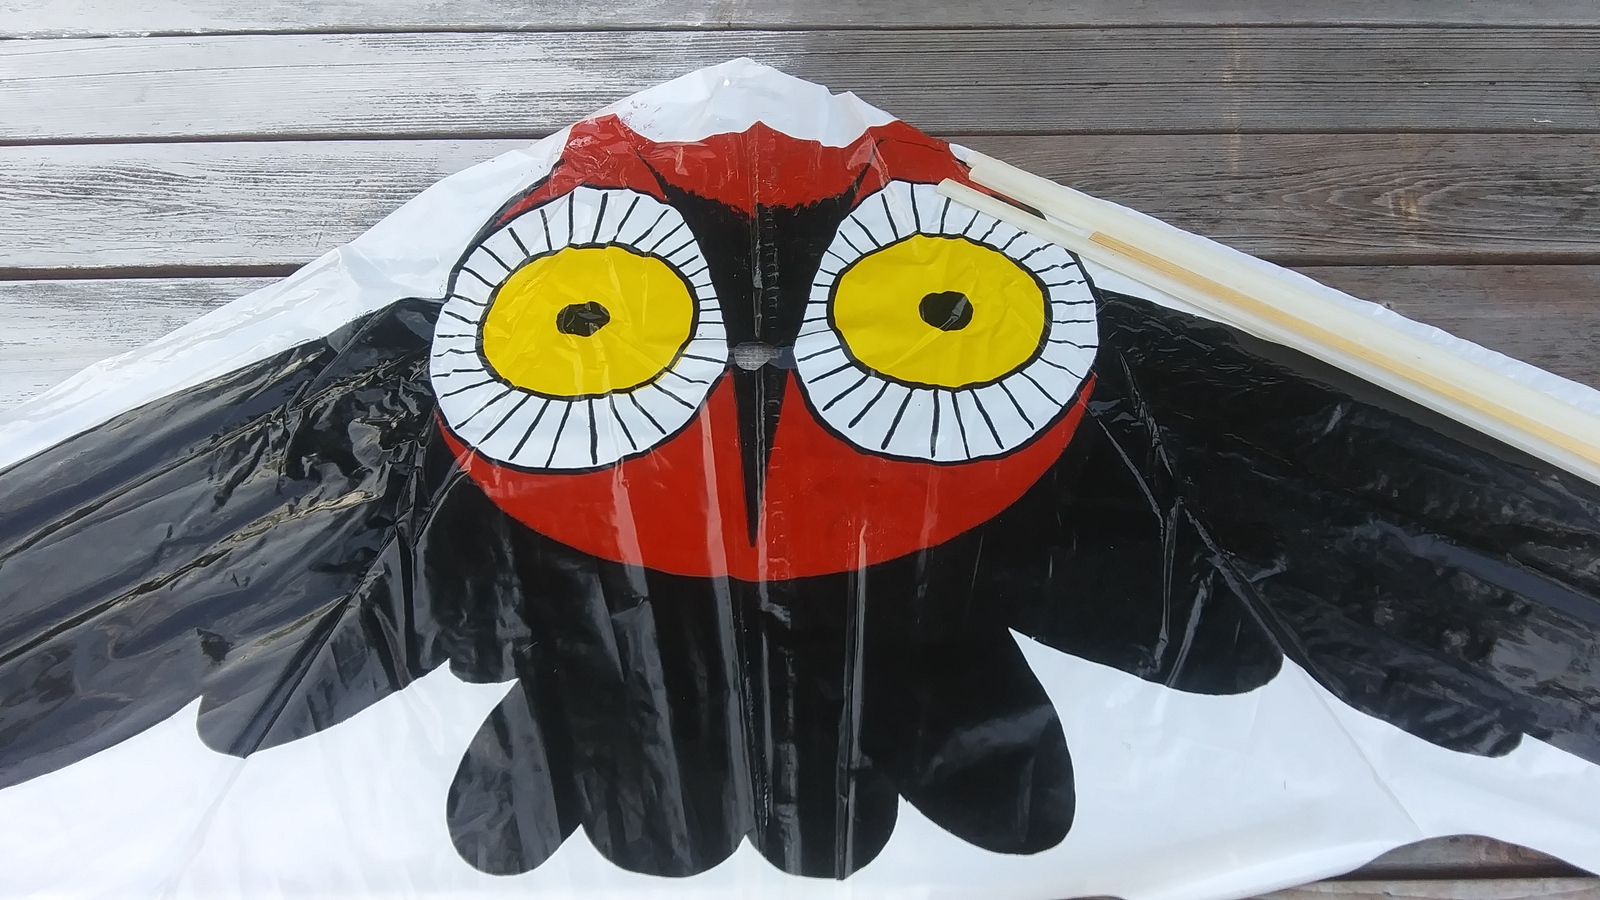 Primary image for Kite Delta Owl Hi Flier Vintage Plastic Toy Kite New Old Stock Found Collectible